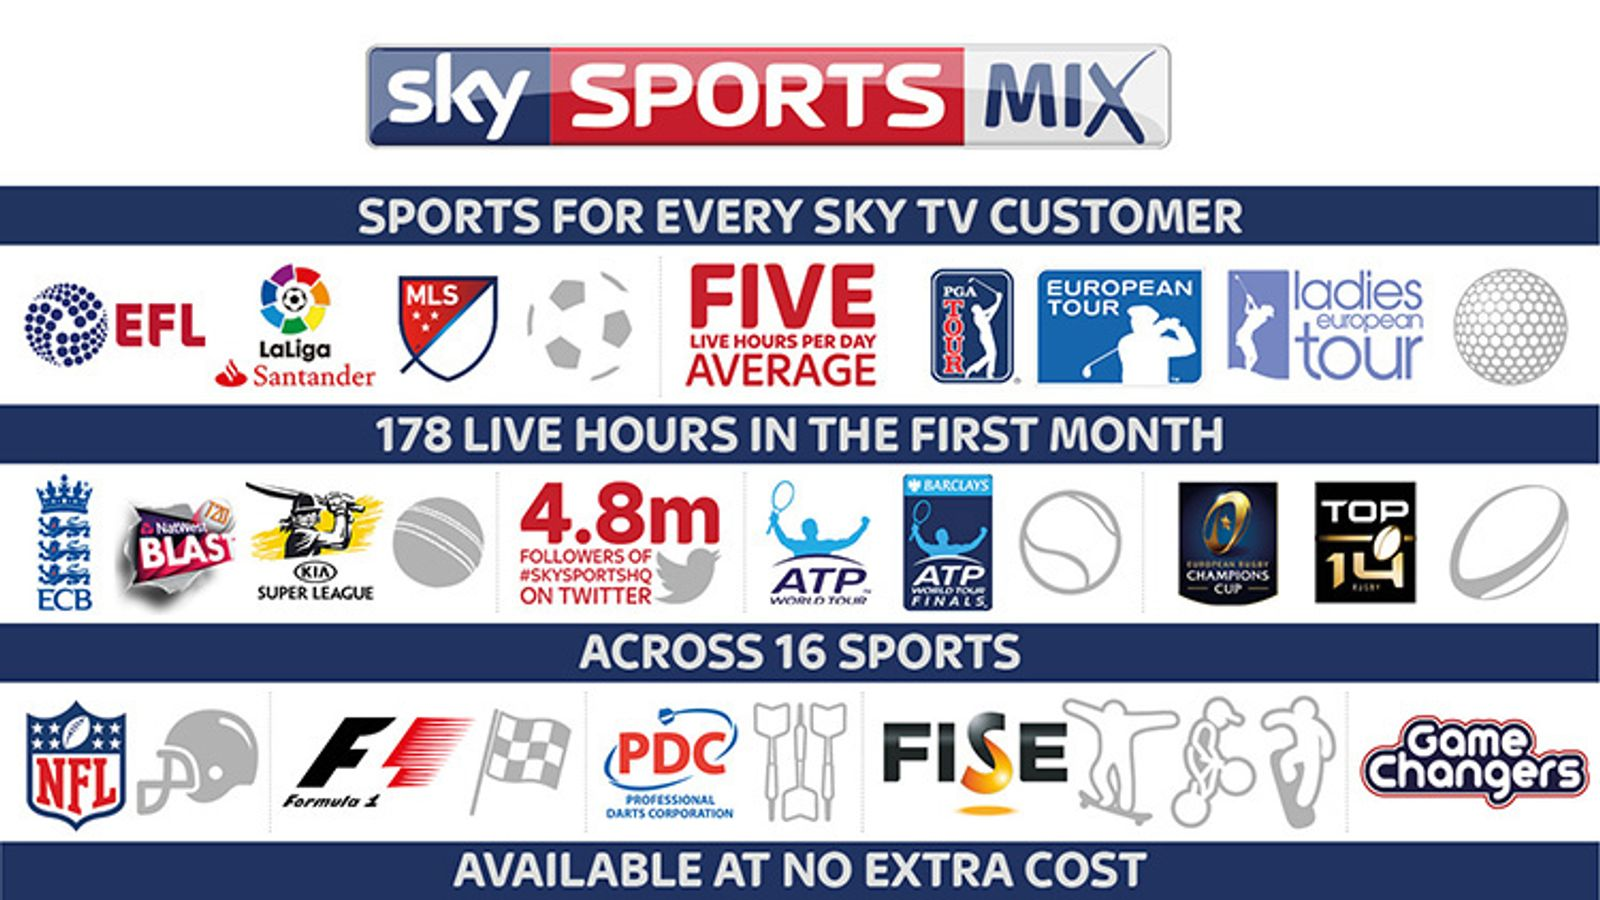 New channel Sky Sports Mix launches today